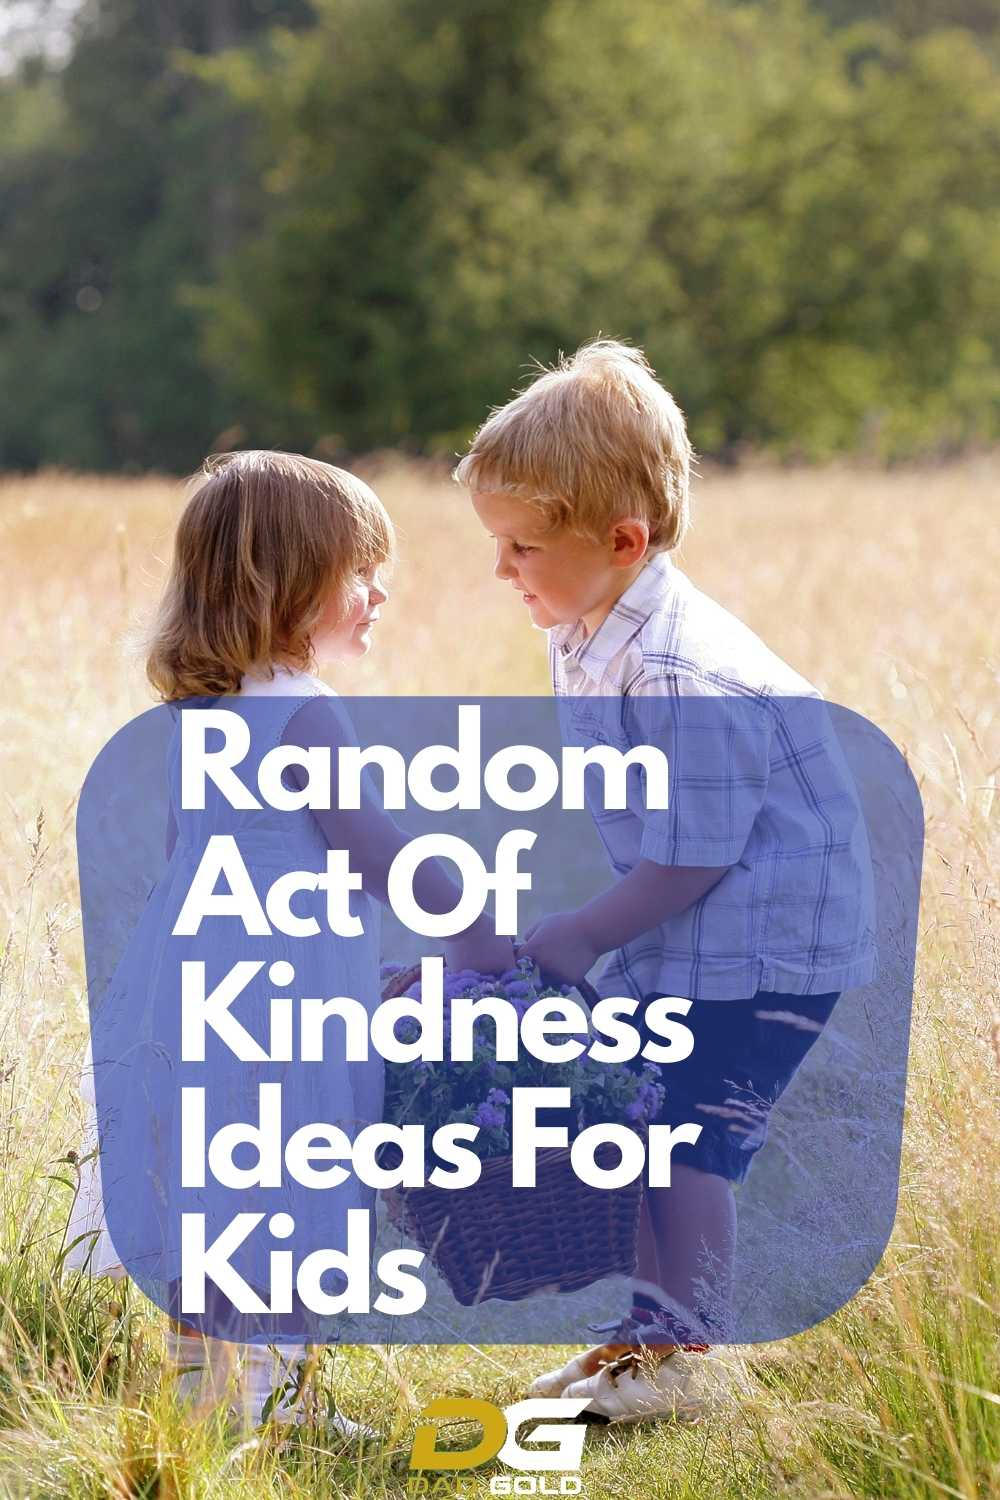 Random Act Of Kindness Ideas For Kids